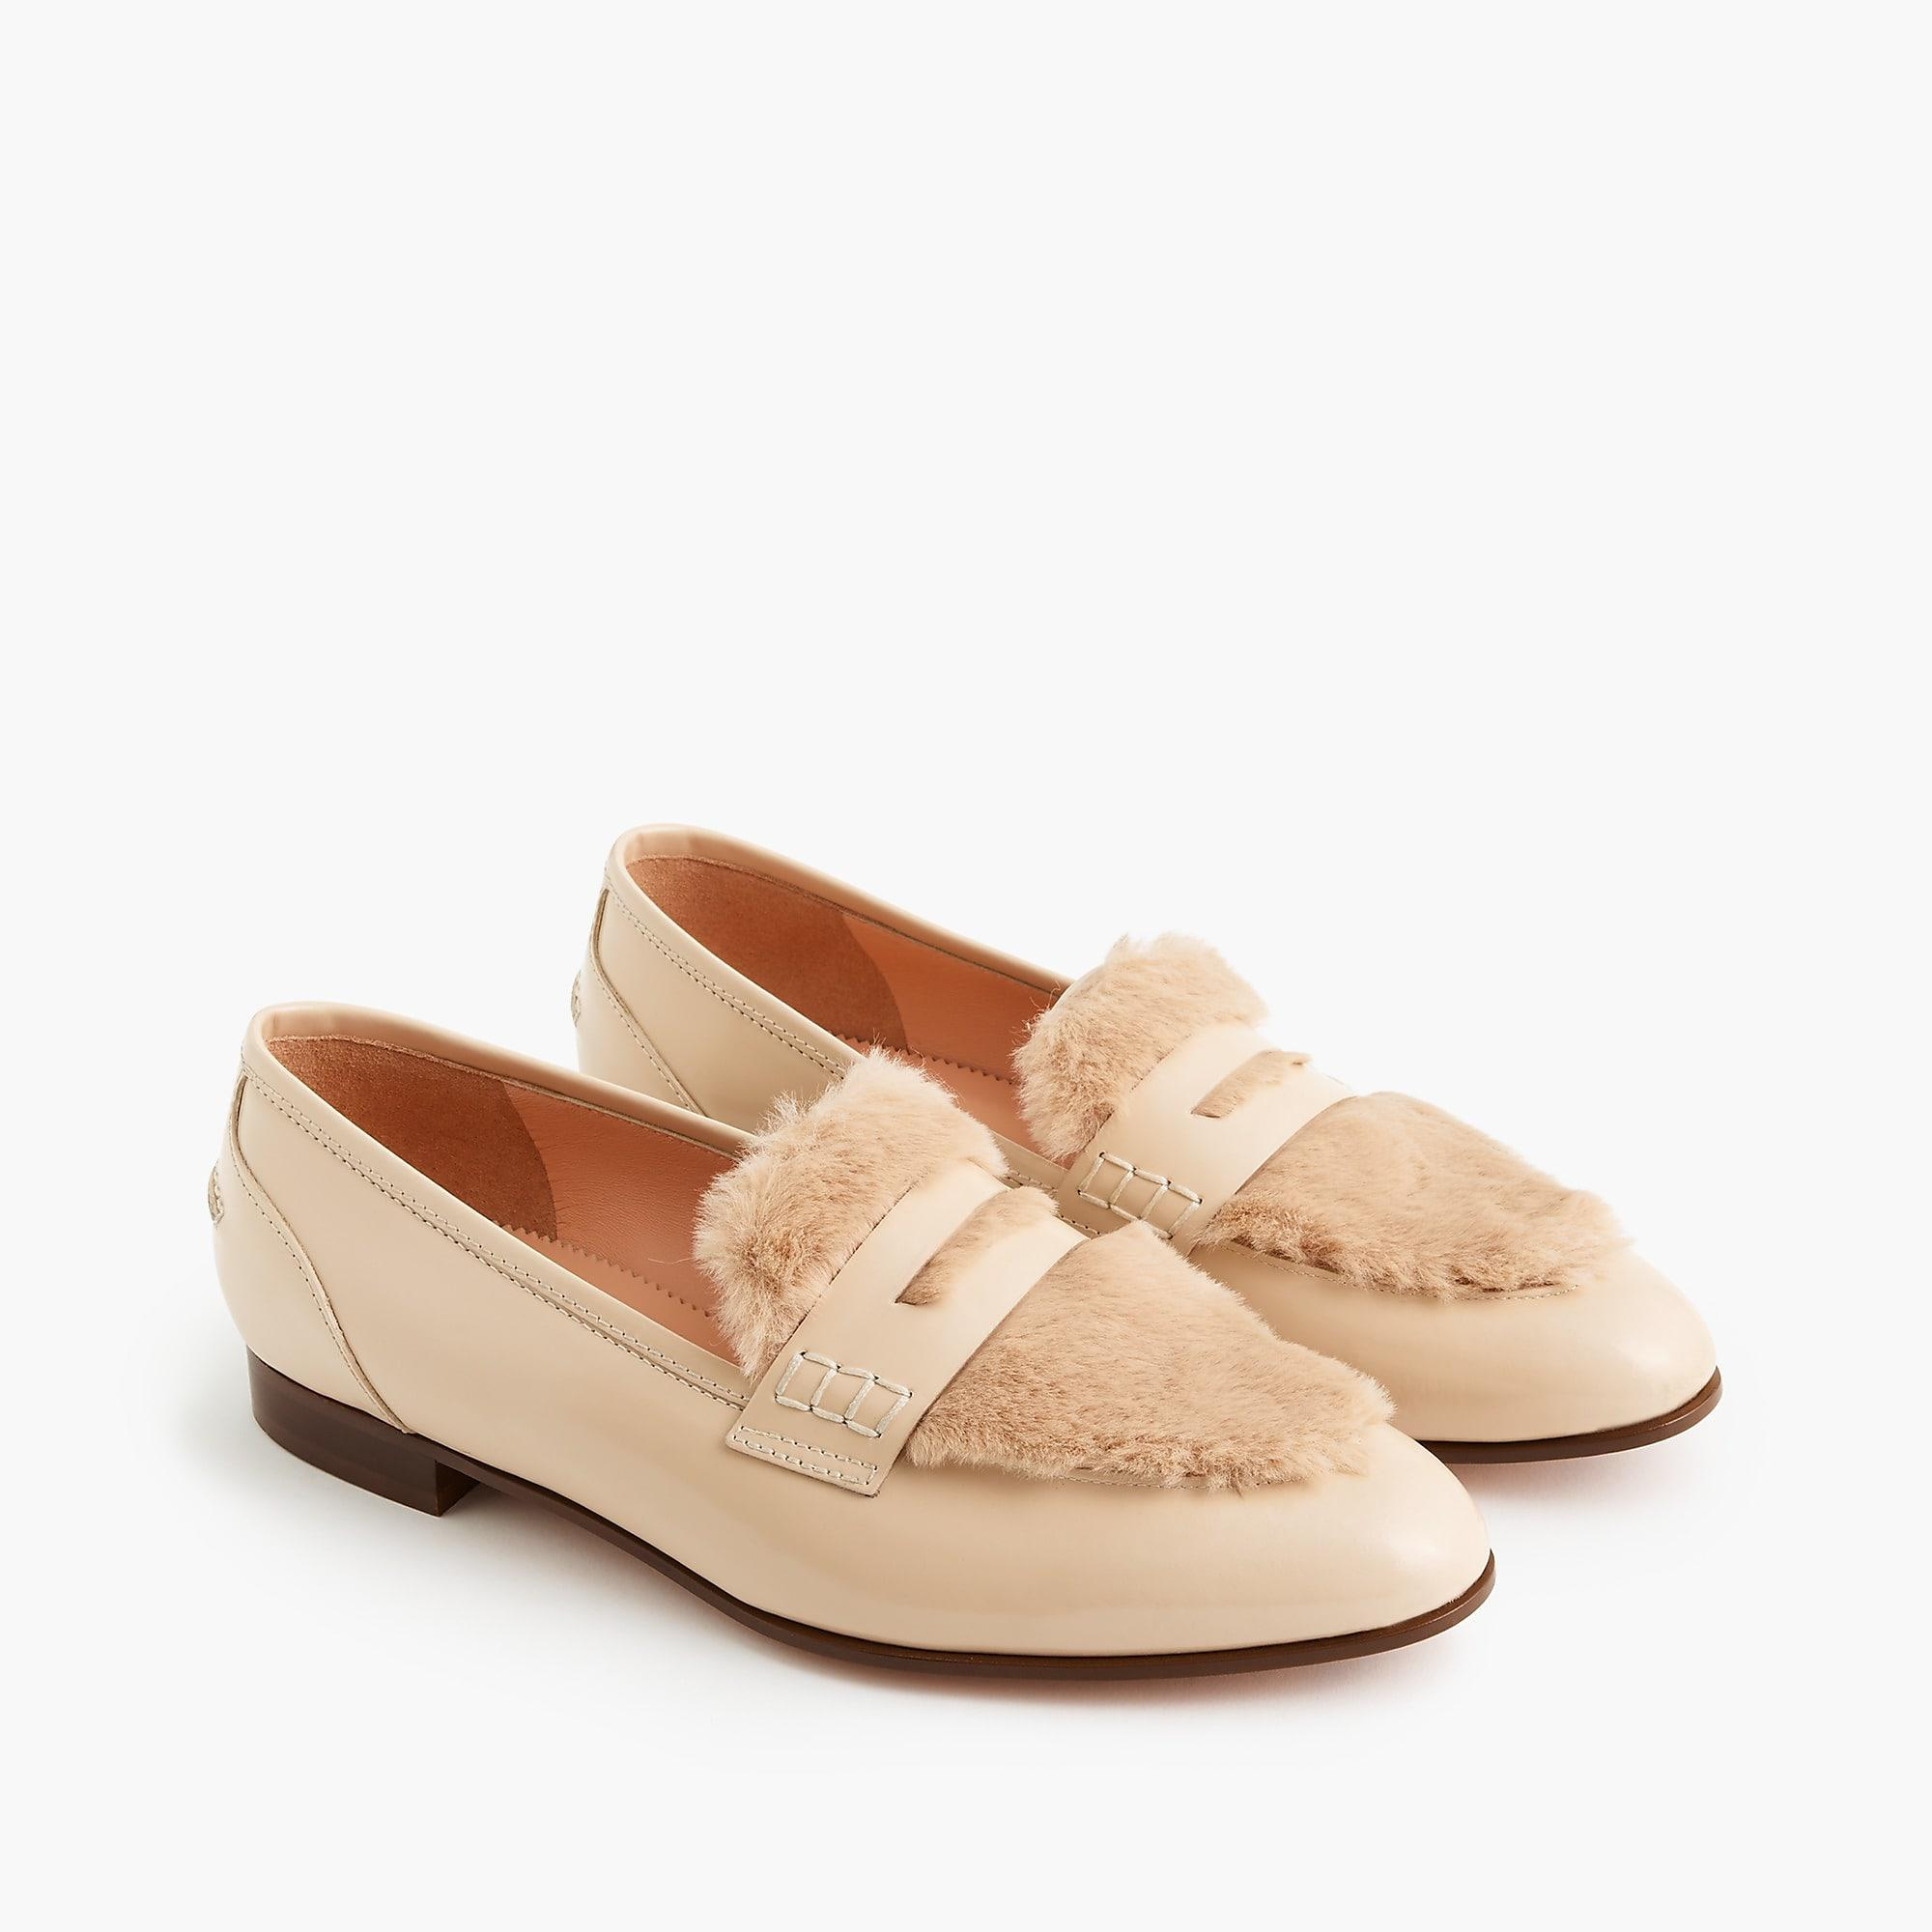 J.Crew Academy Penny Loafers With Faux-fur Trim in Natural ...